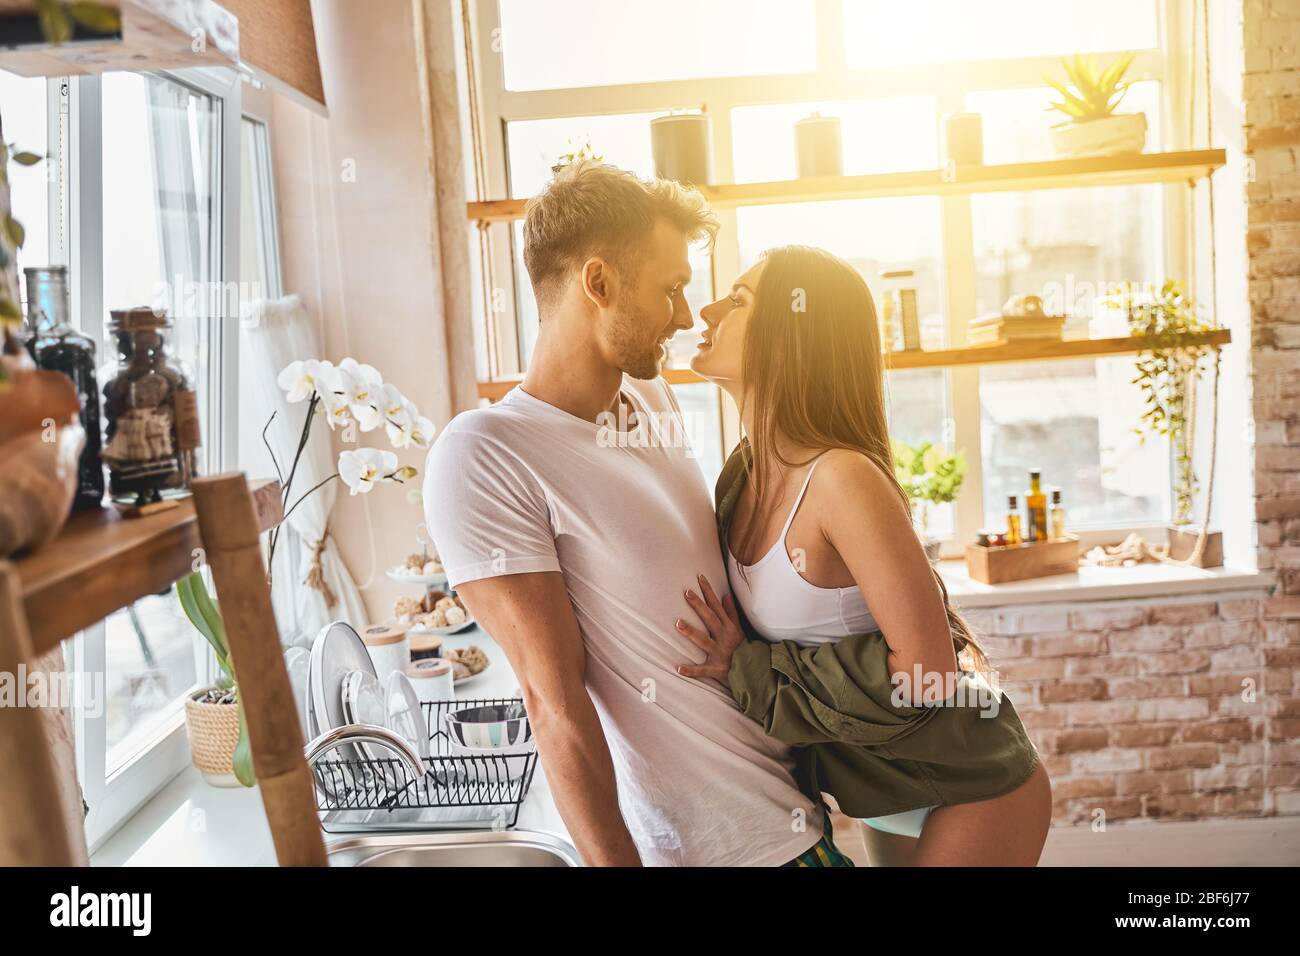 Relaxed young woman flirting with her partner Stock Photo